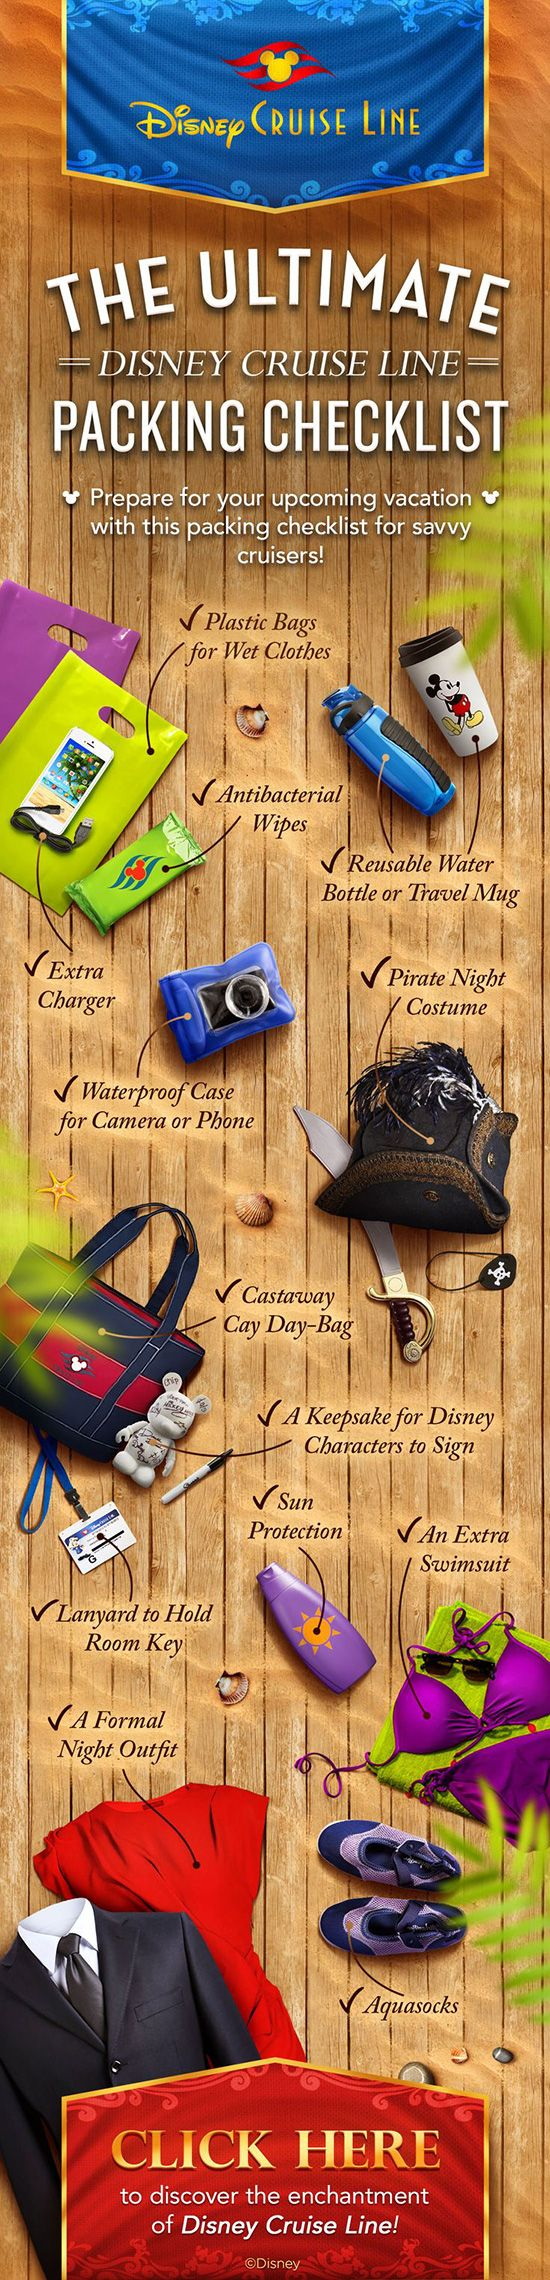 Disney Cruise Line Packing List